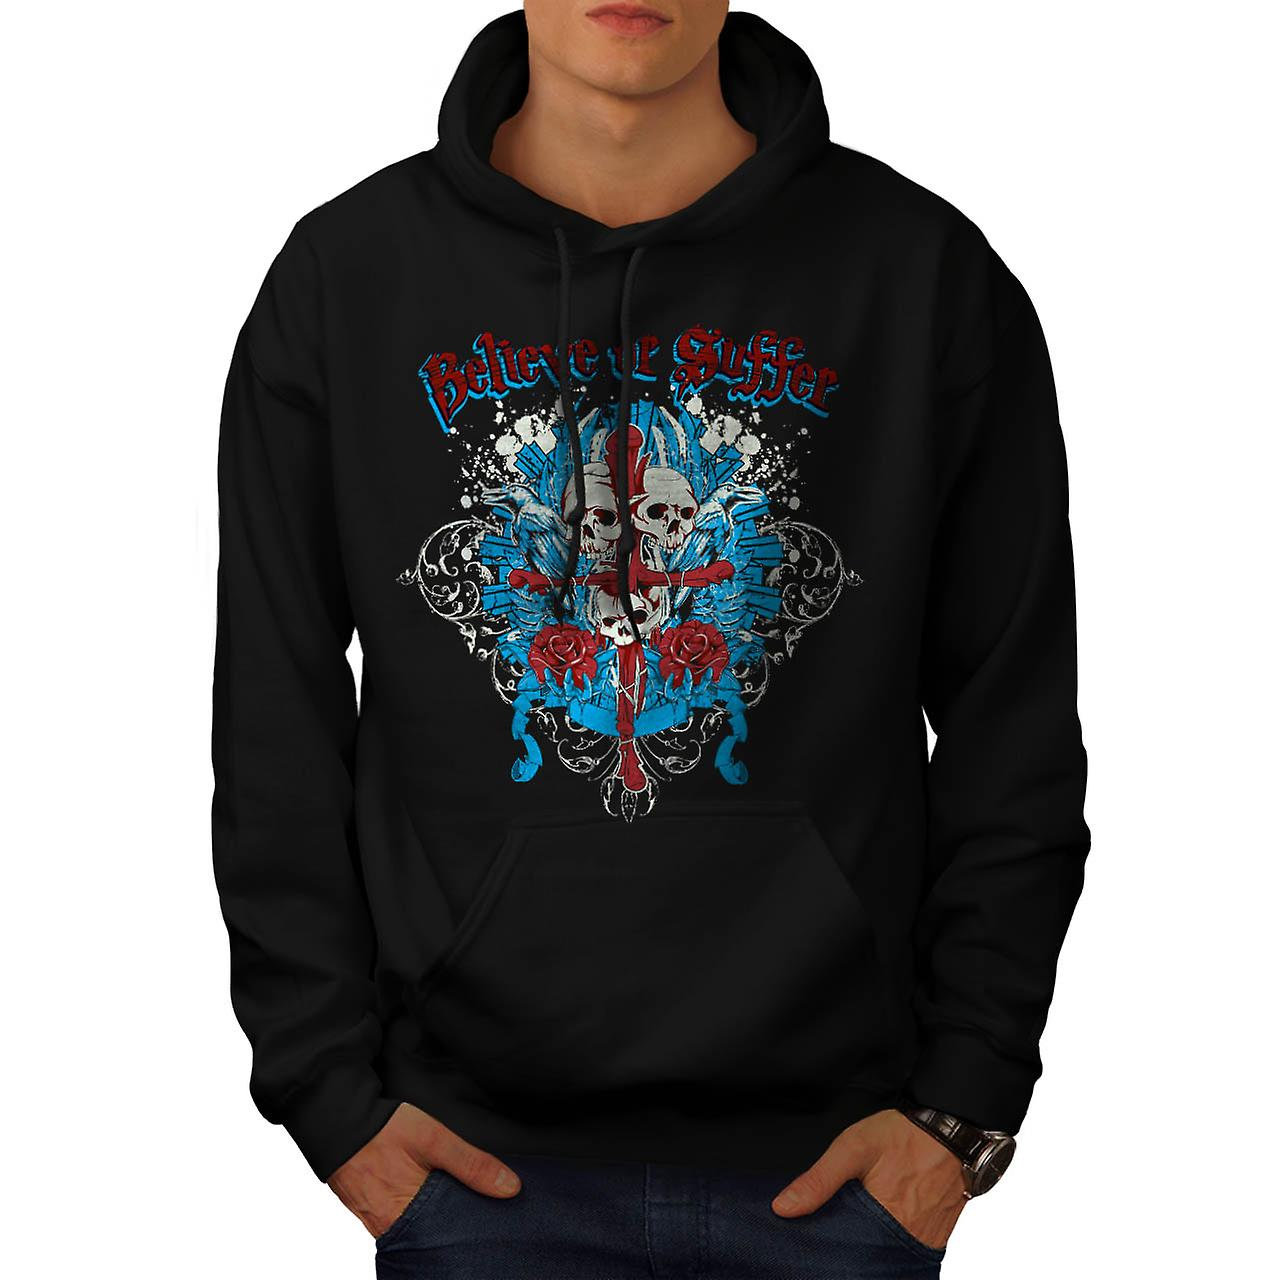 Believe Suffer Skull Cross Bones Men Black Hoodie | Wellcoda